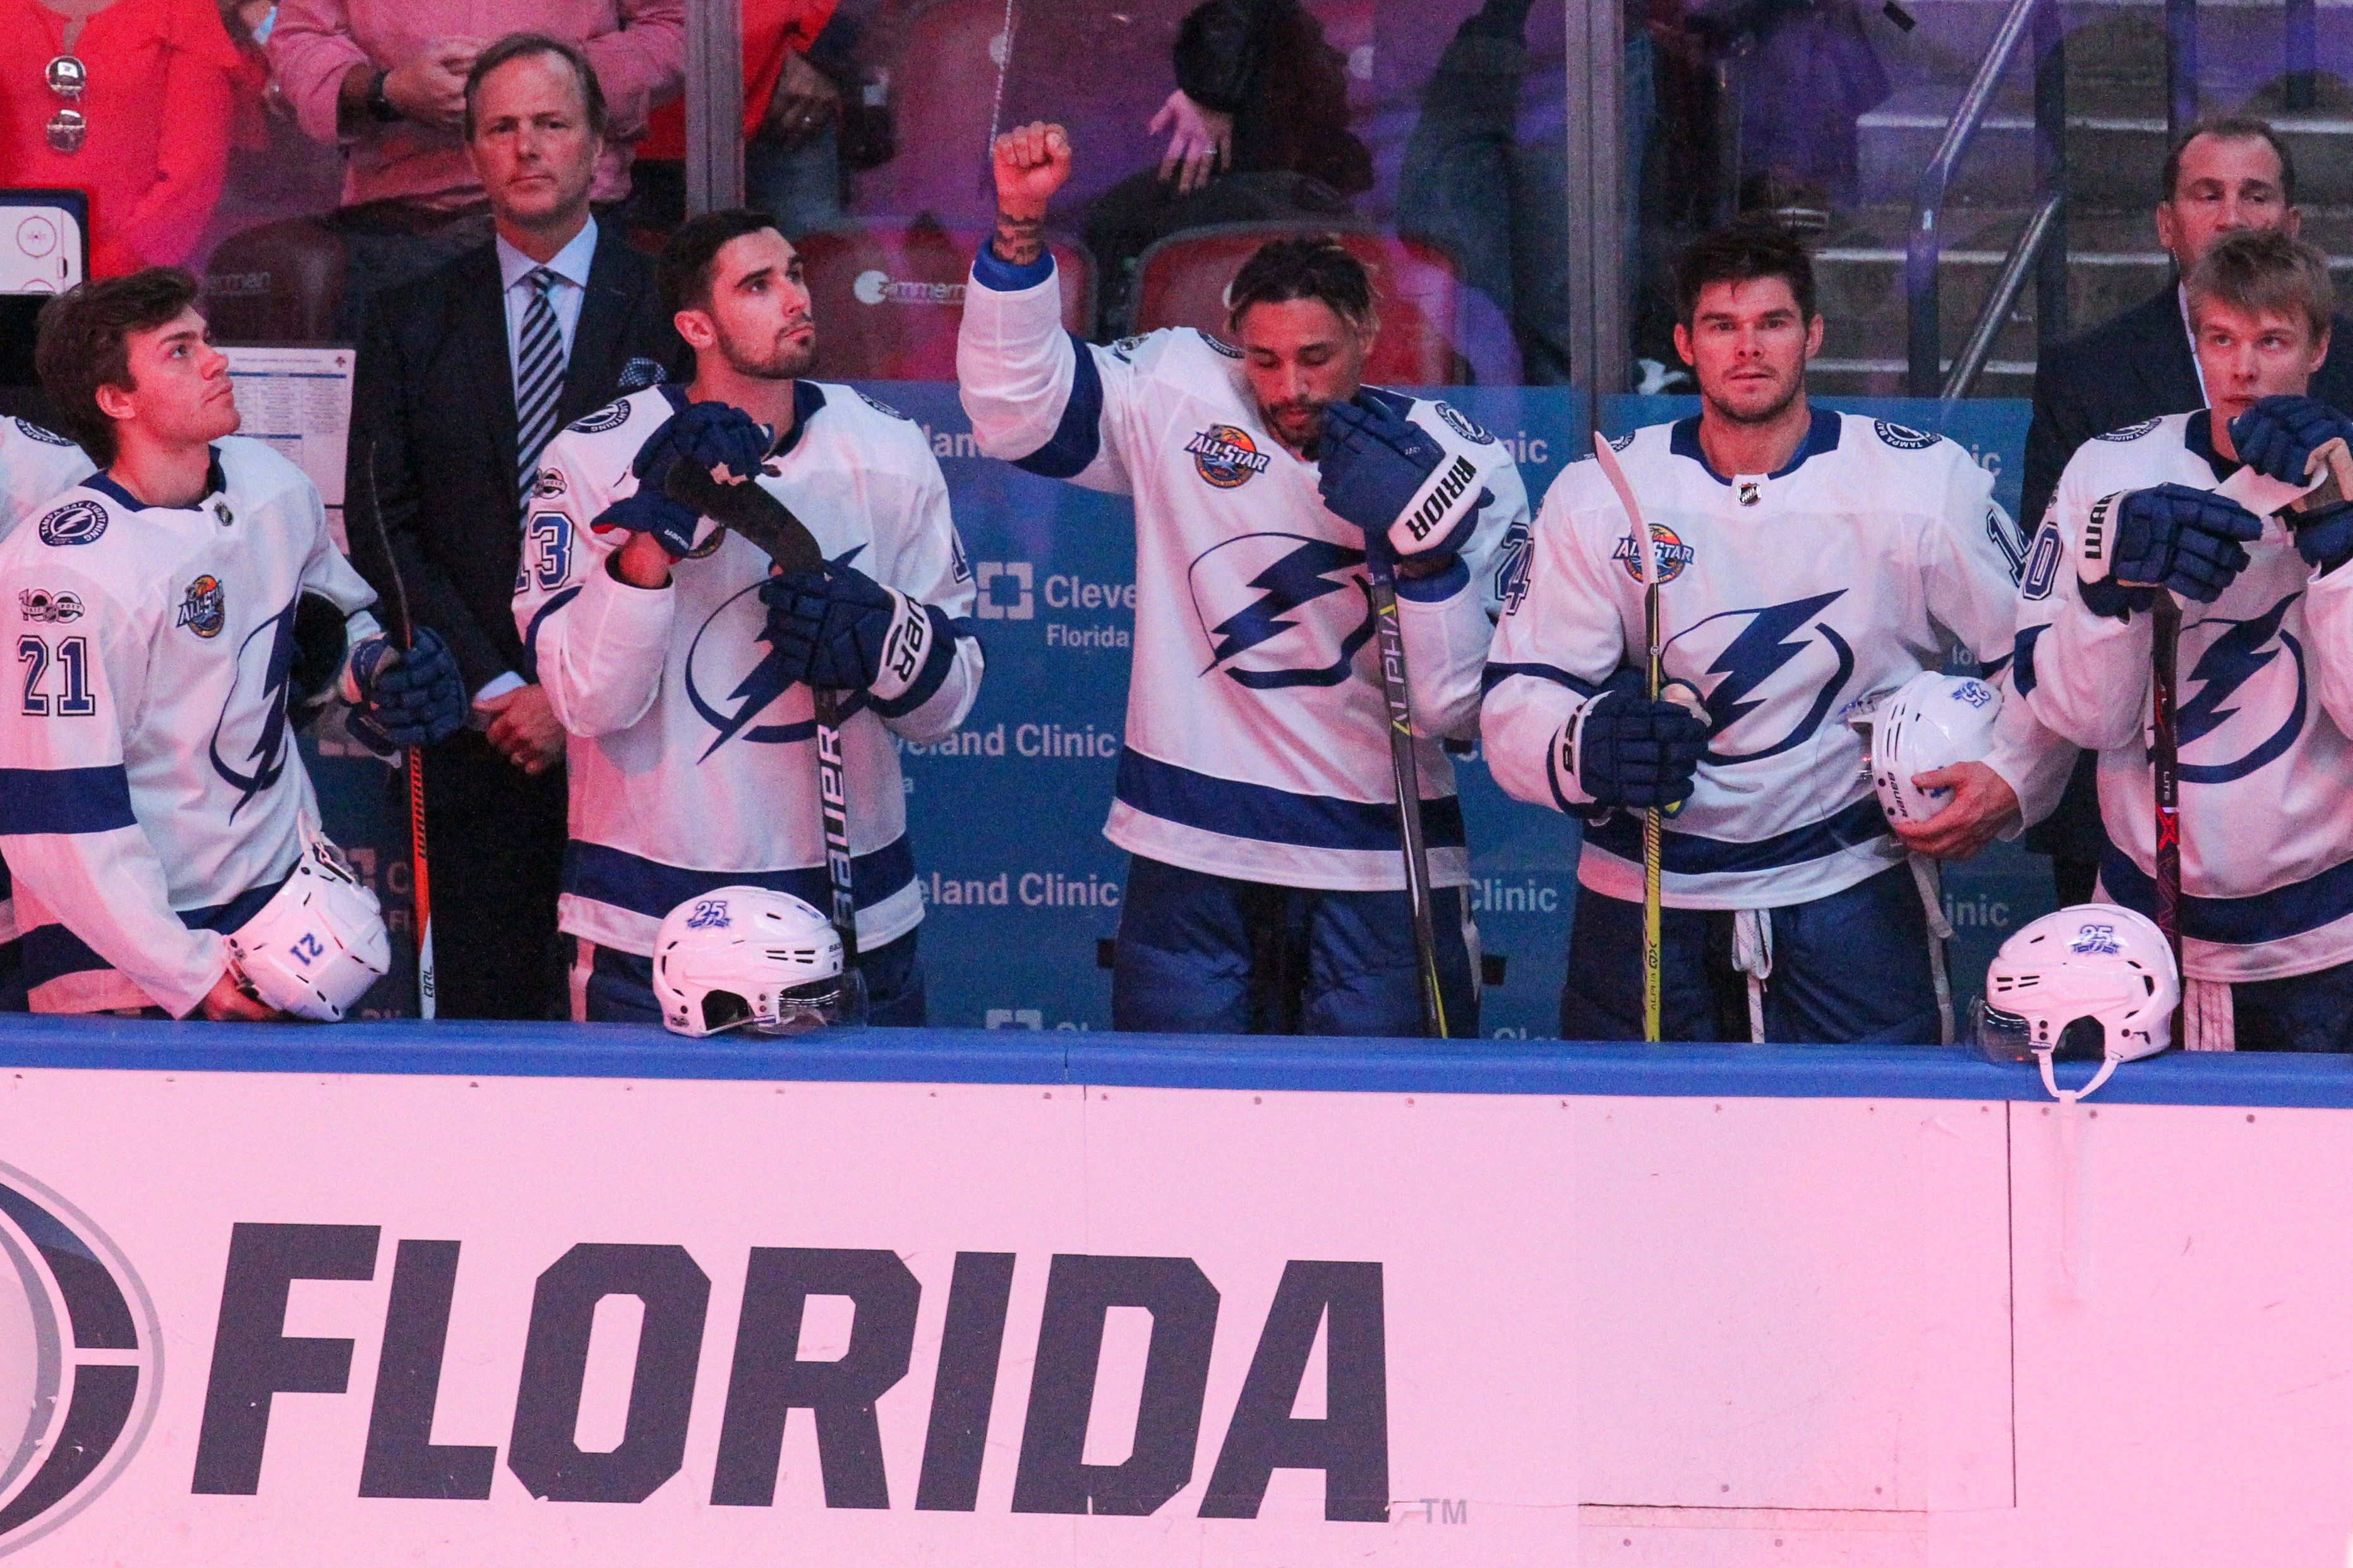 The Tampa Bay Lightning's J.T. Brown protests during the national anthem before the start of a game against the Florida Panth